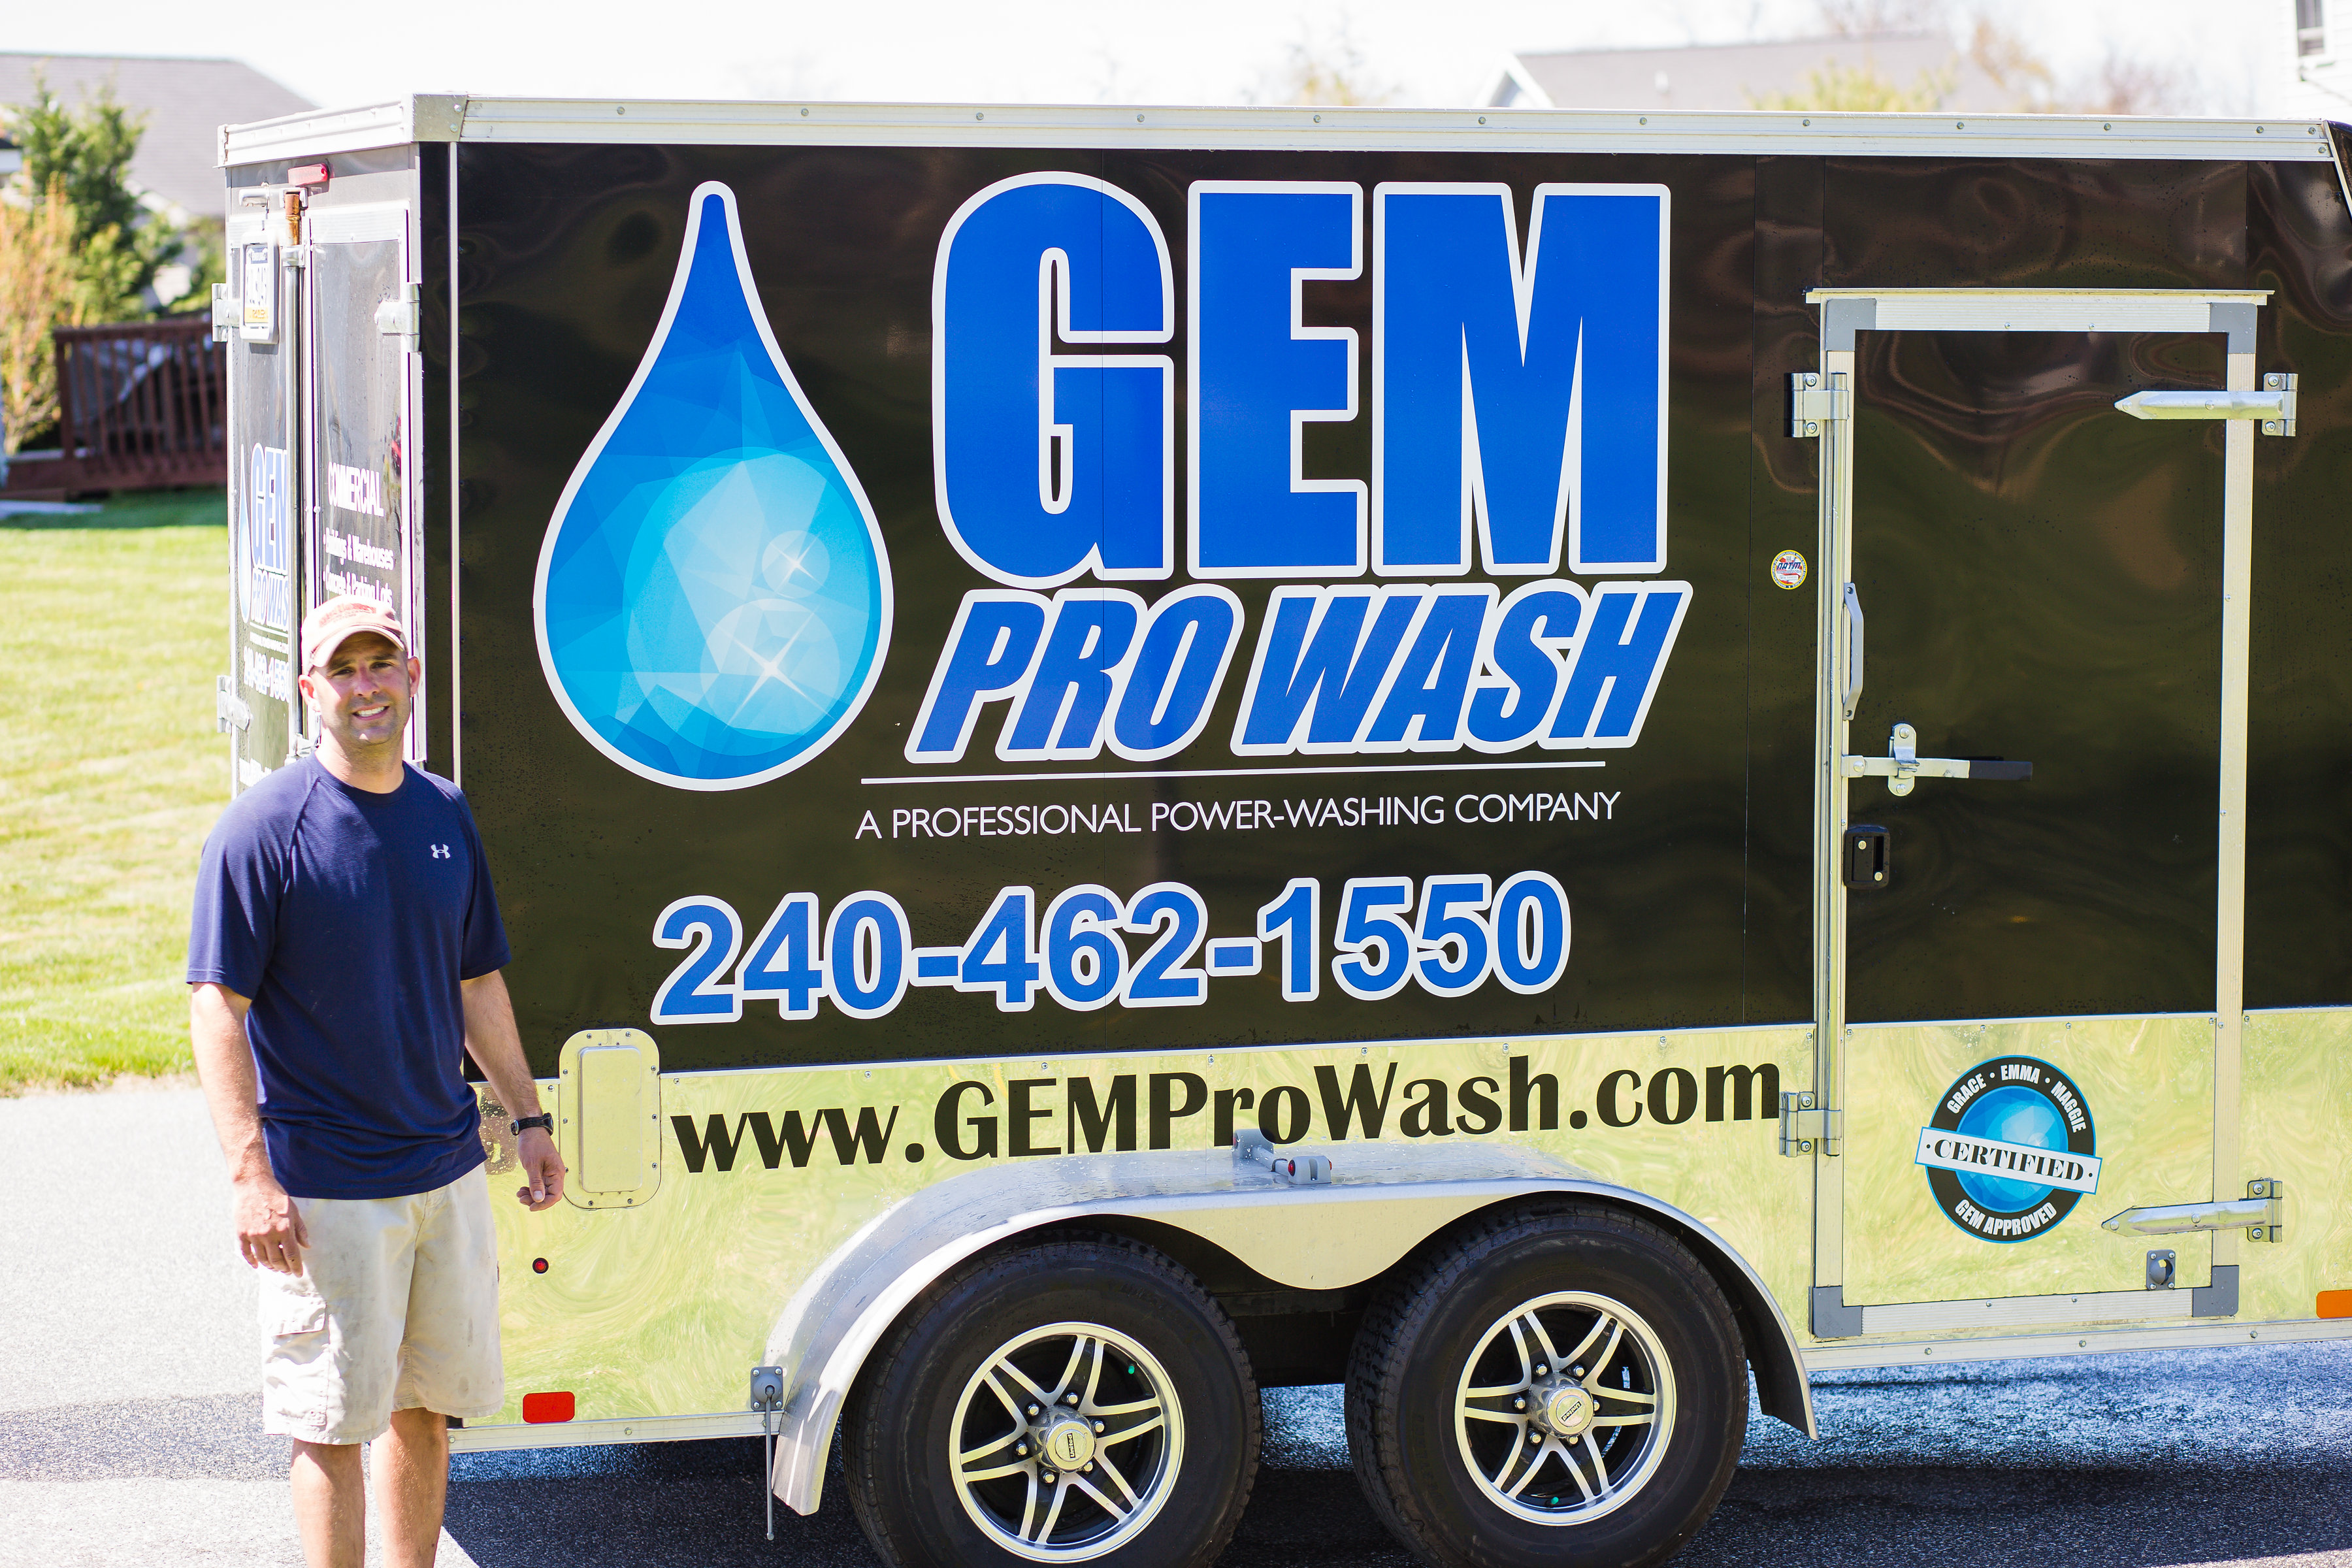 Gem Pro Wash | Sidewalk Cleaning Company in Greencastle PA